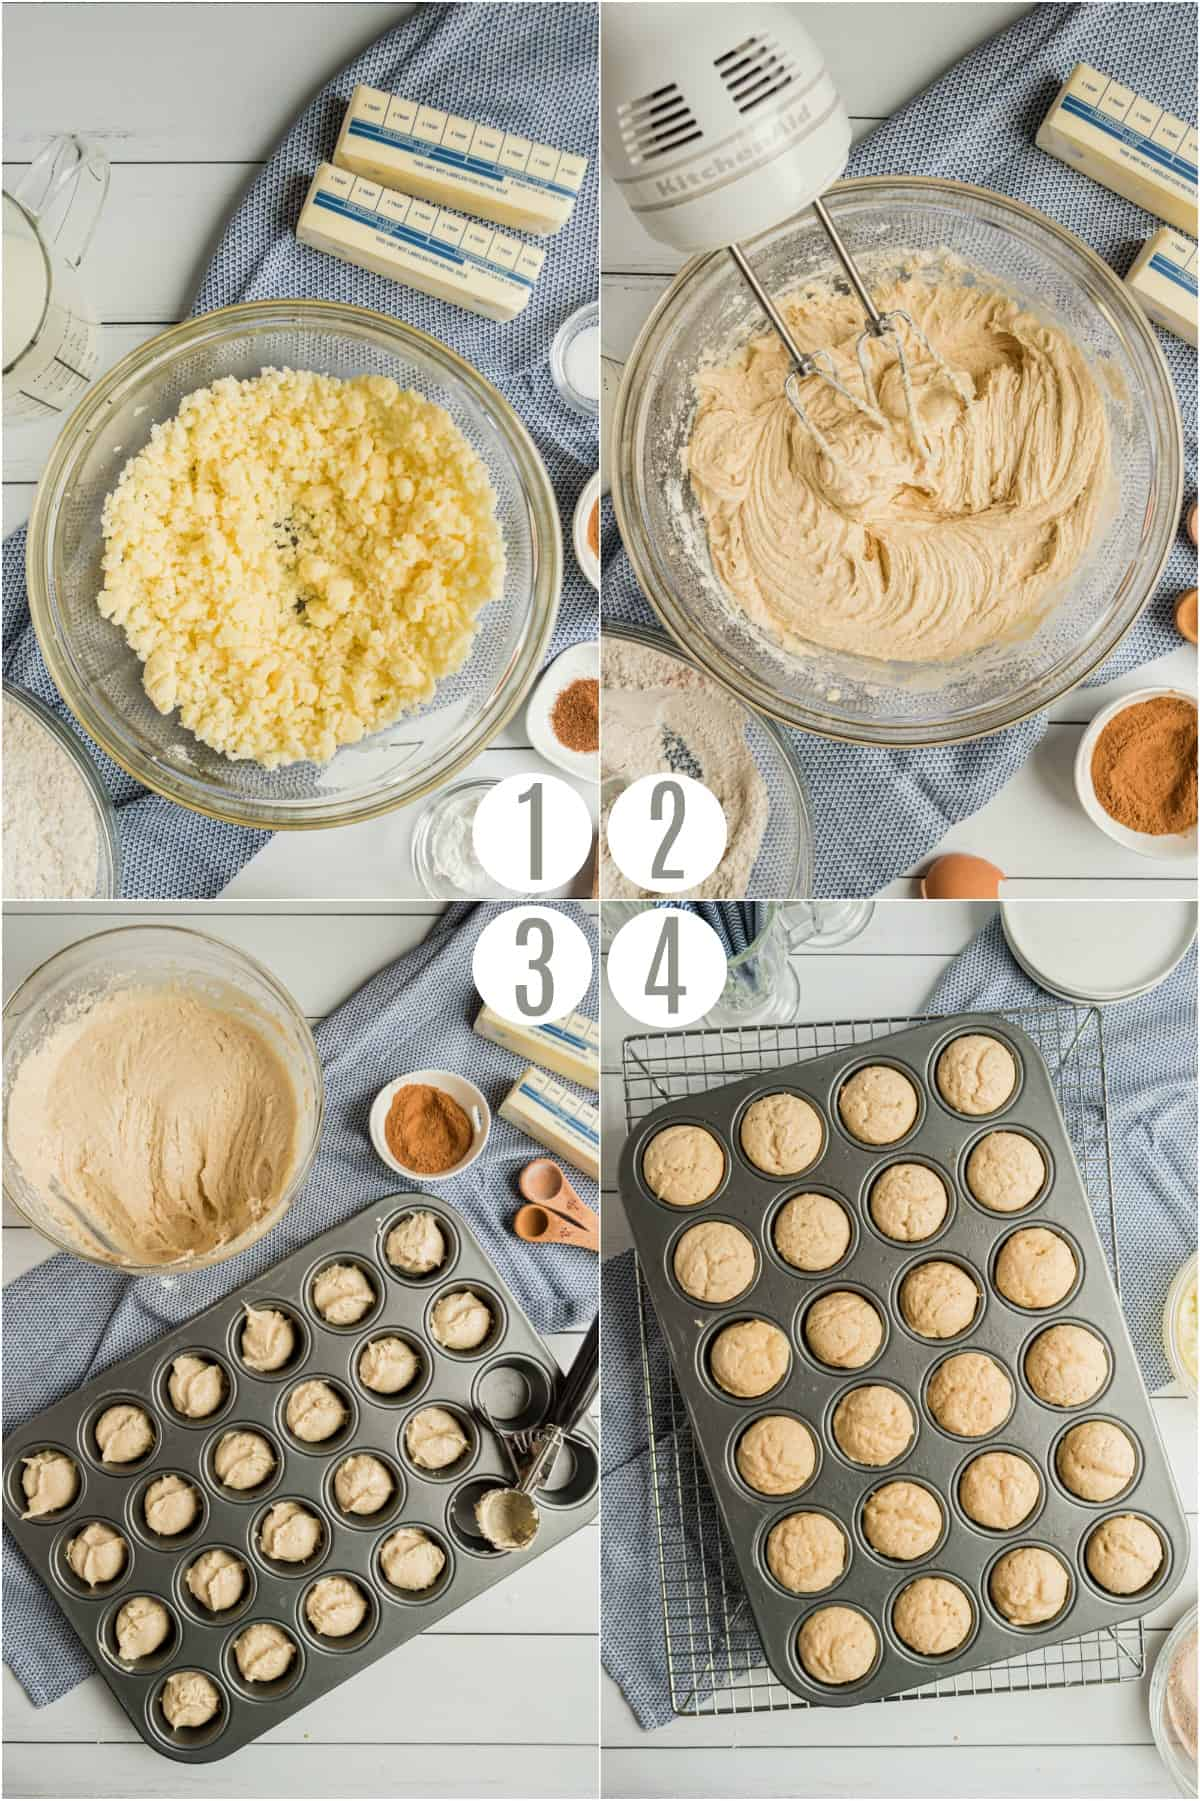 Step by step photos showing how to make cinnamon muffins.